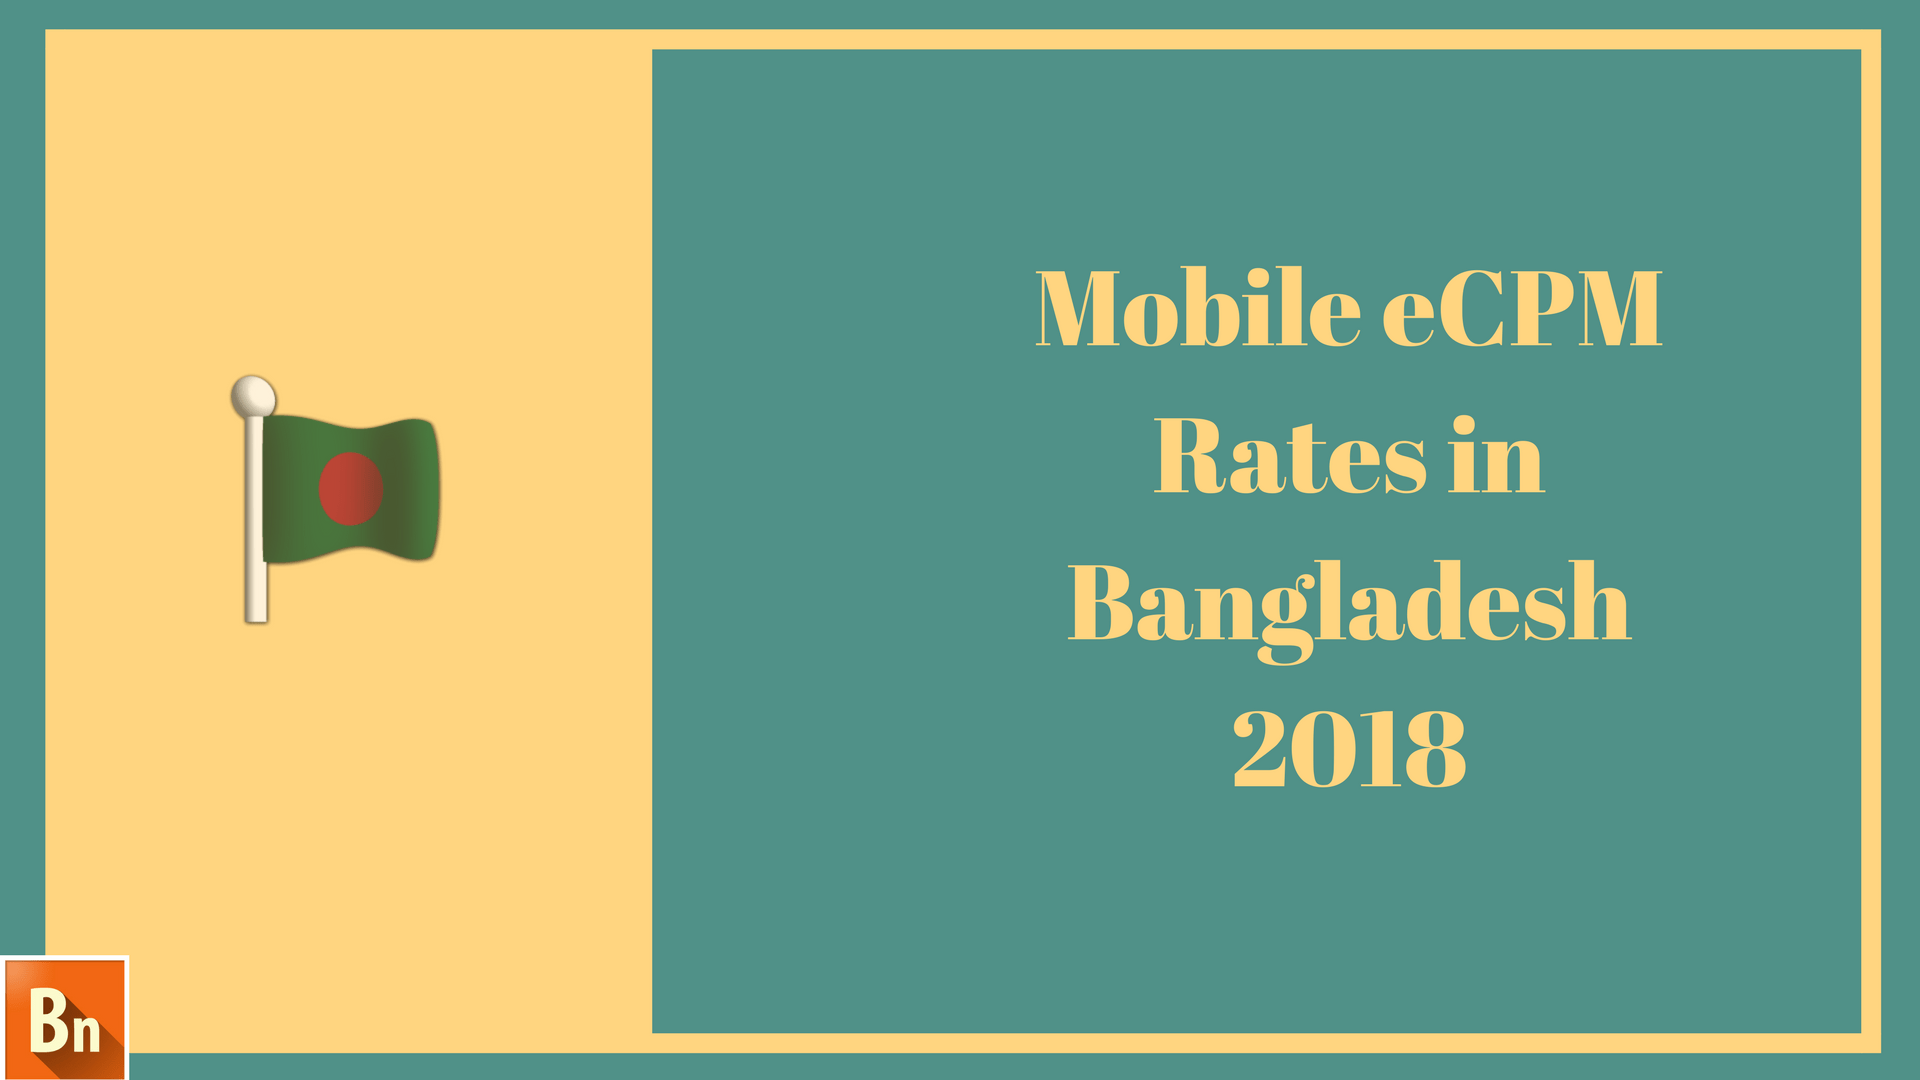 Mobile eCPM Rates in Bangladesh 2018